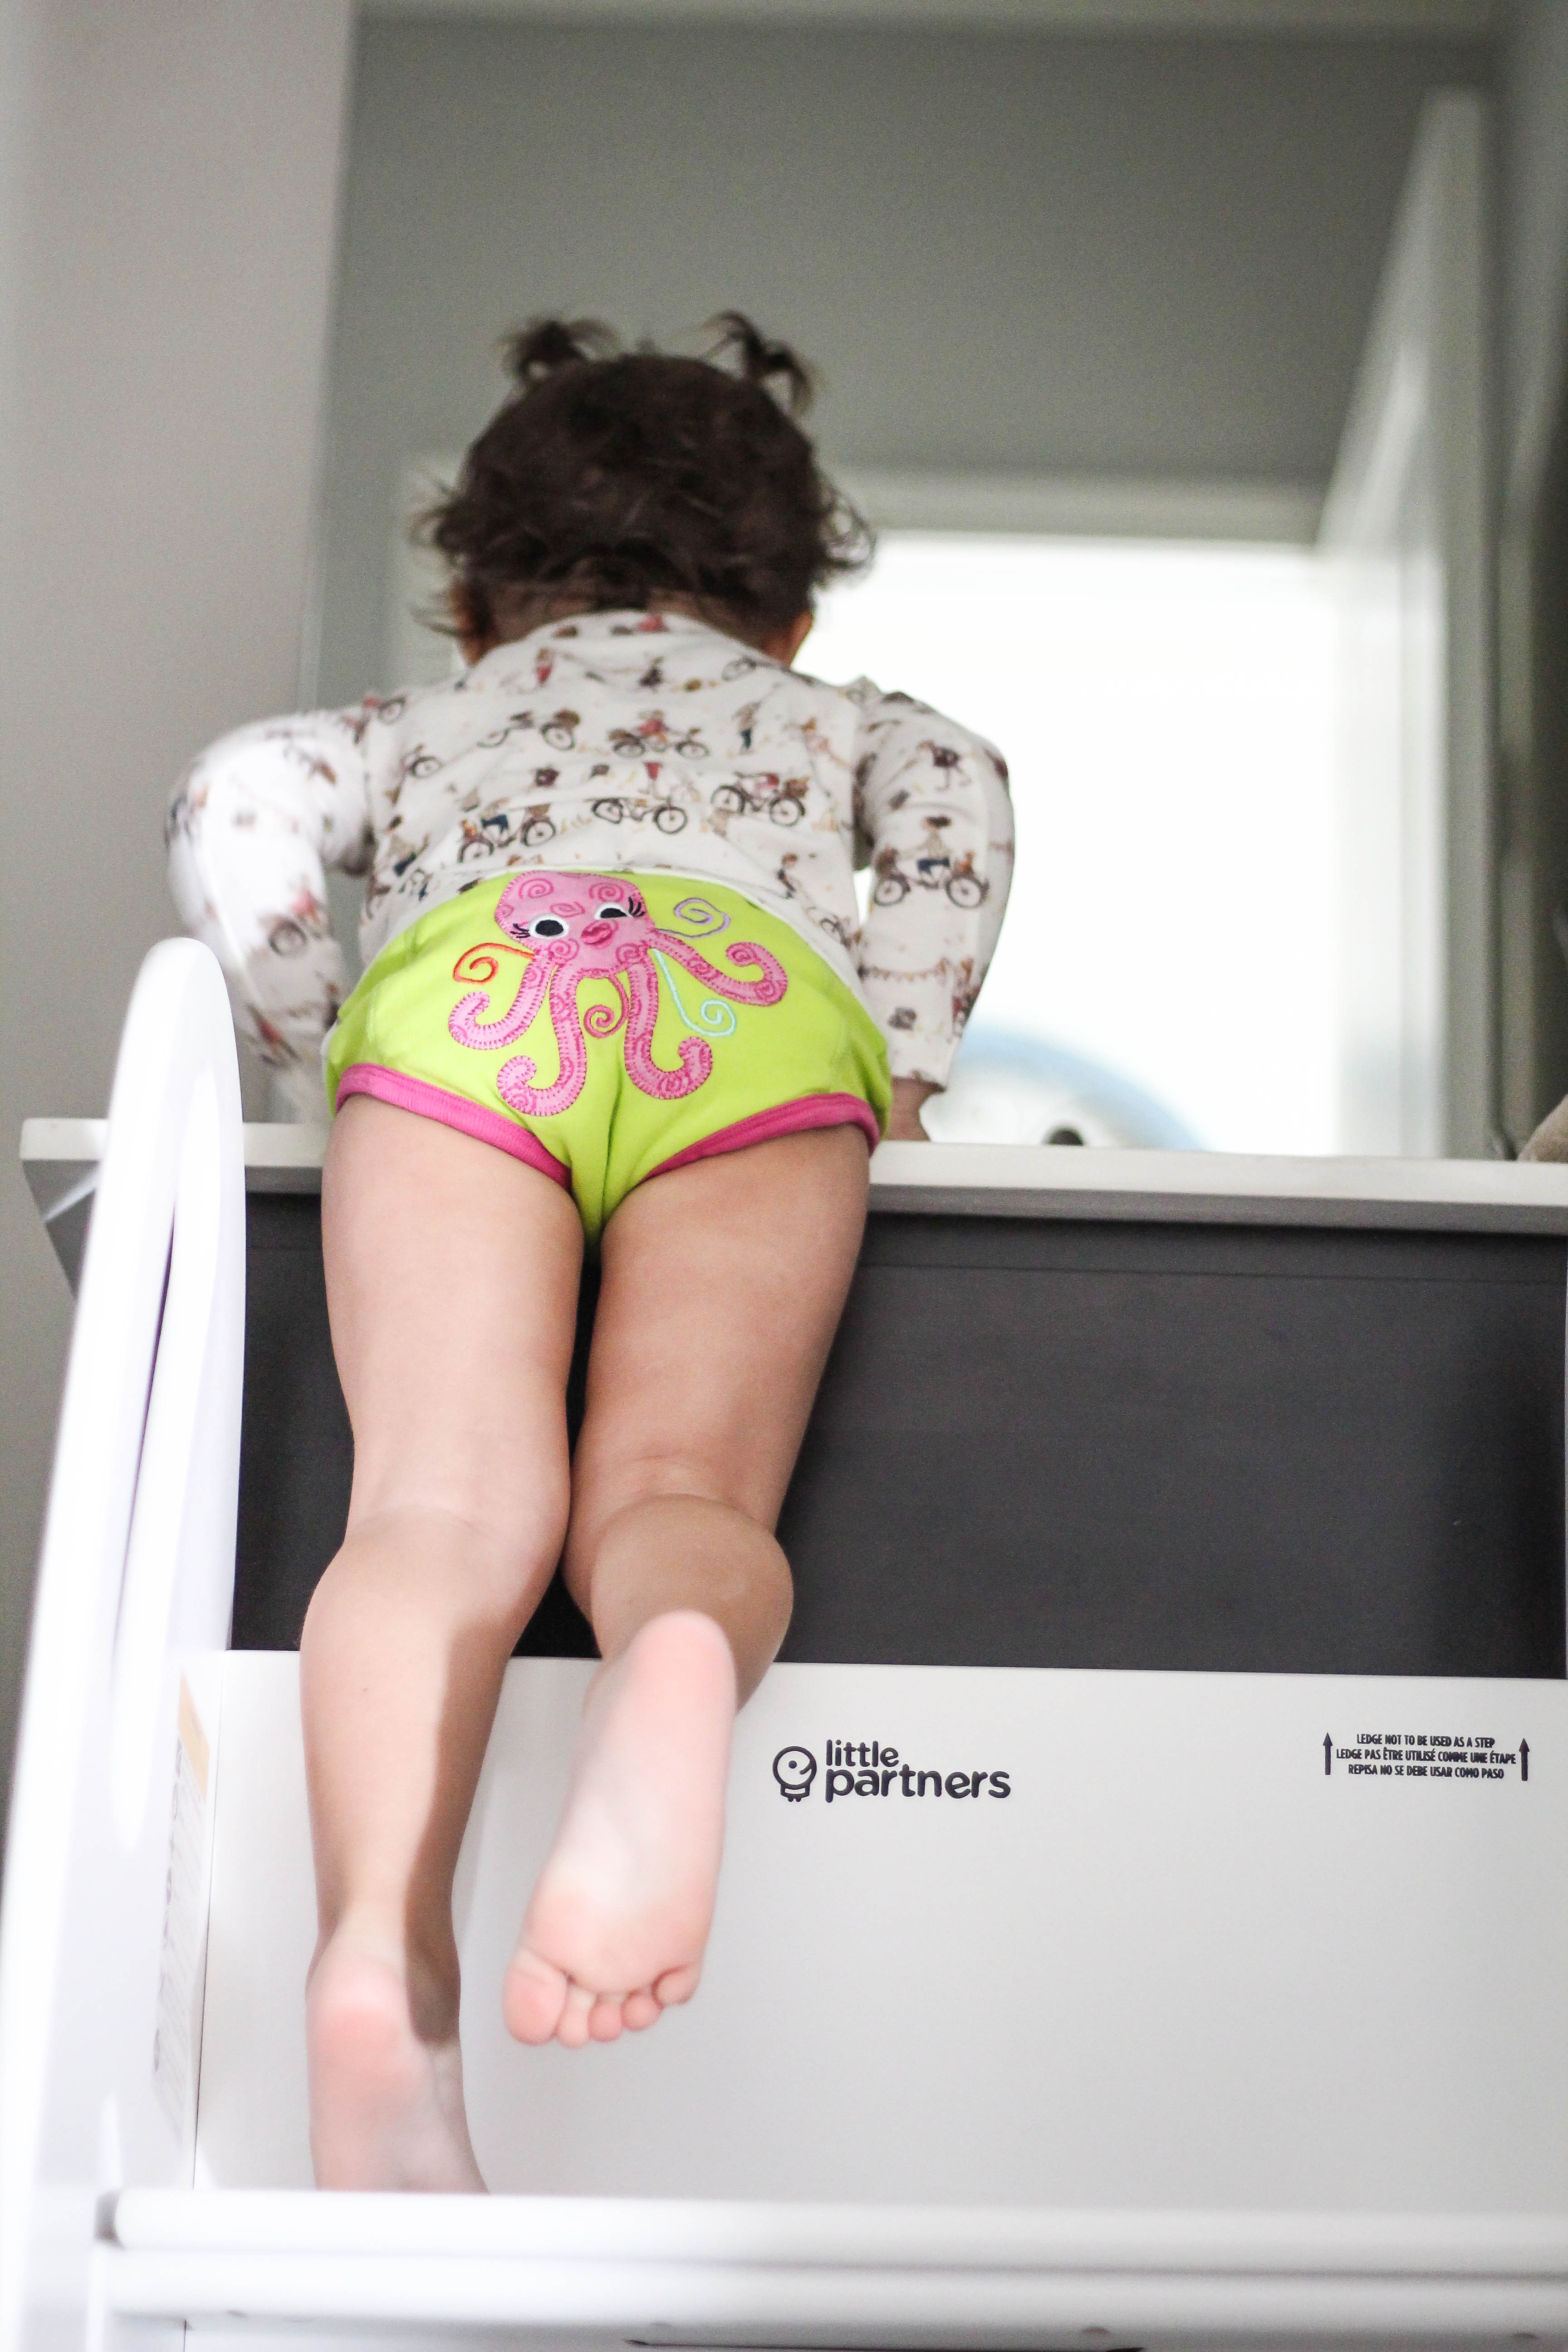 Potty Training A Strong-Willed Child